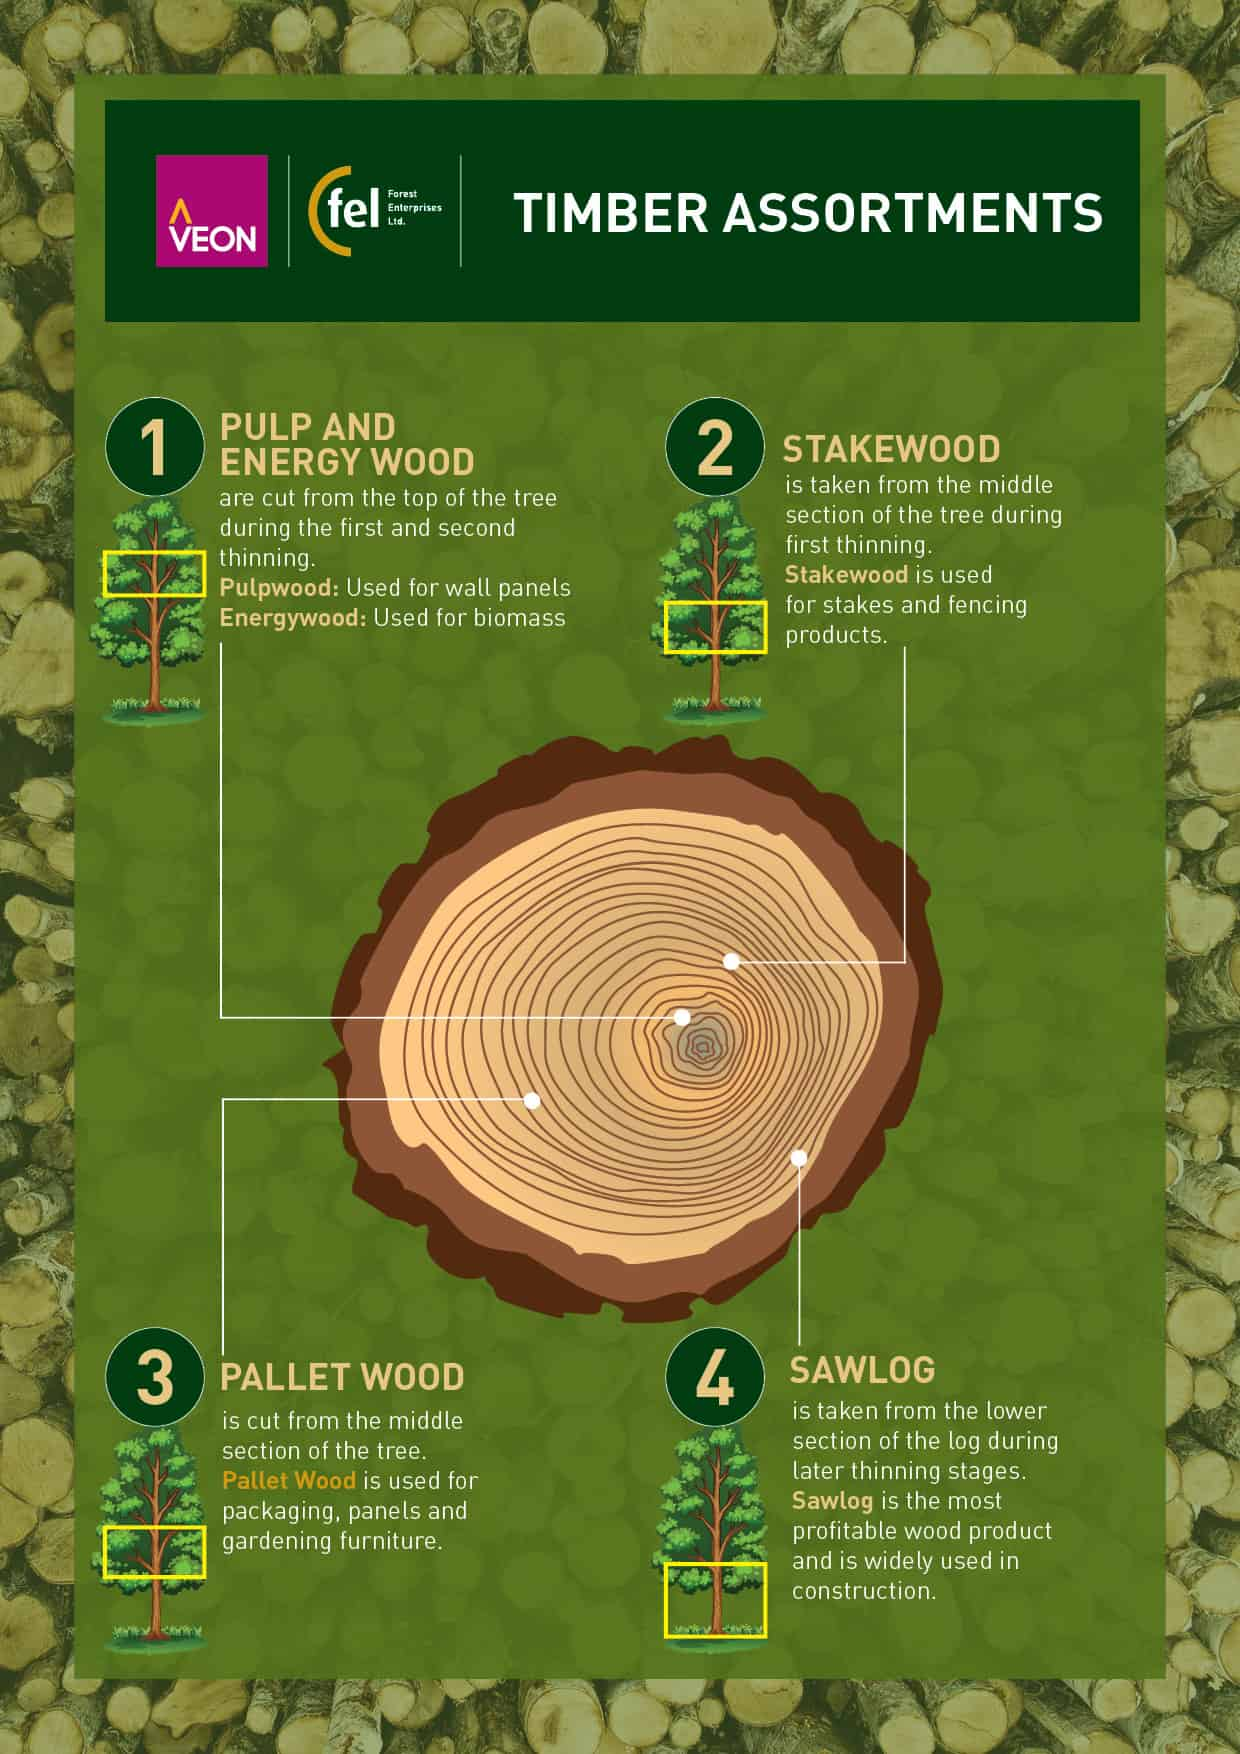 there are four wood product categories